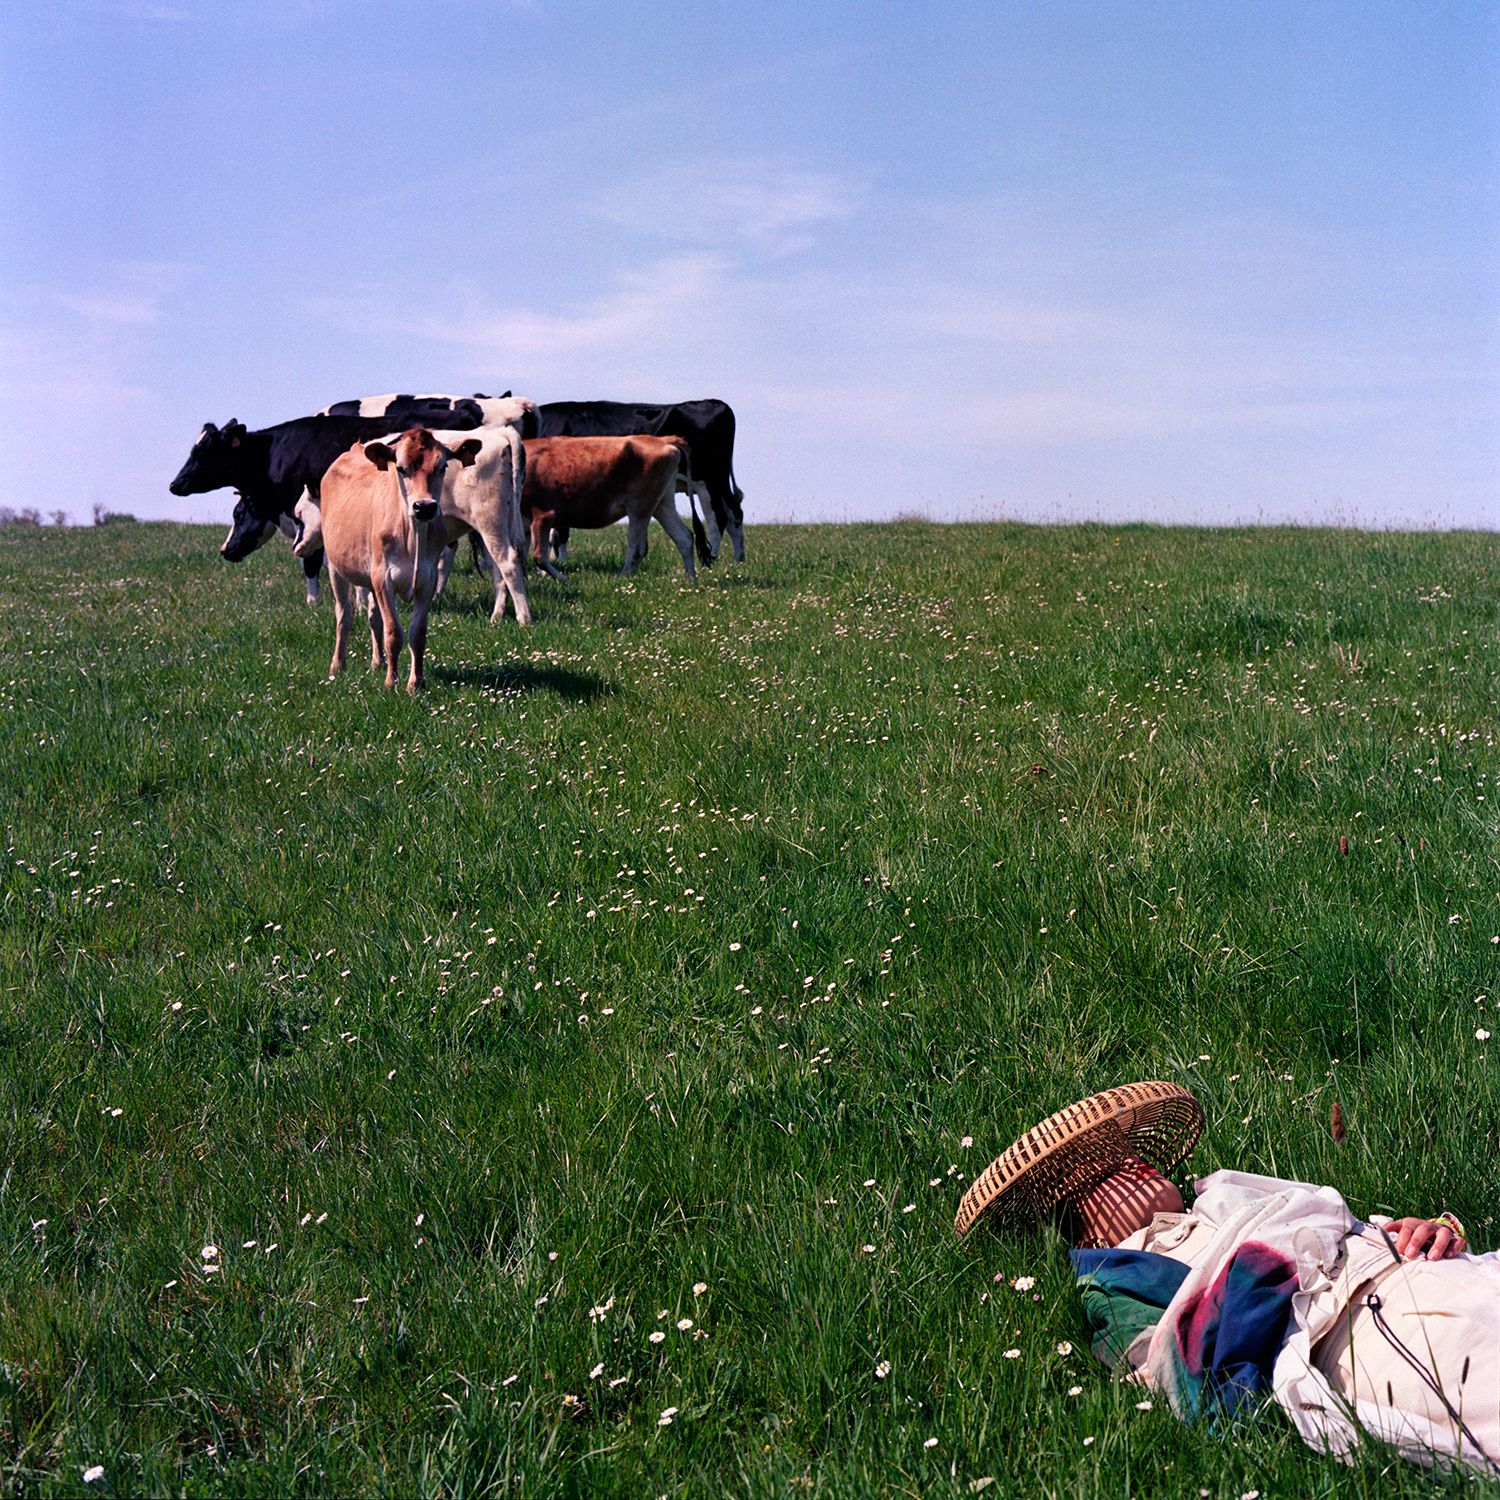 Inès with a Herd of Cows in a Grass Field